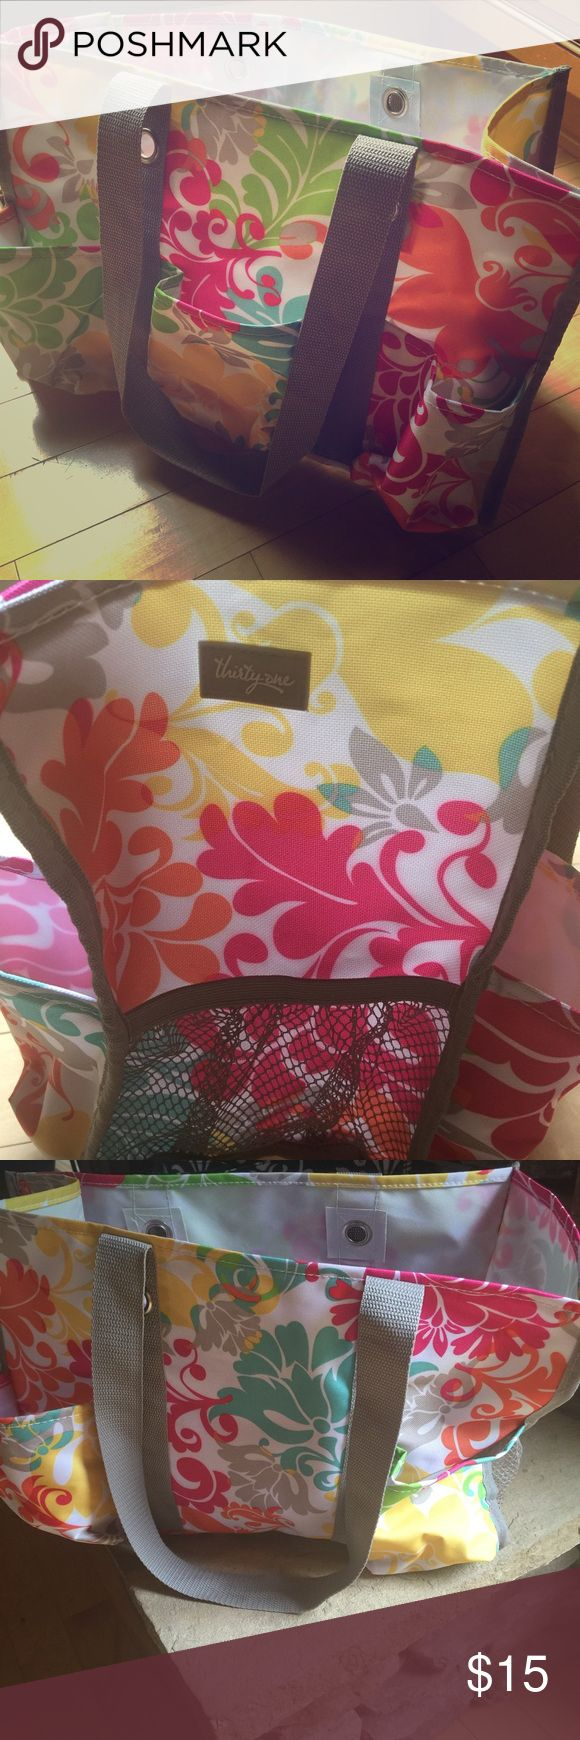 Thirty one utility tote 16 x 6.  3 outer pockets on one side , 2 outer pockets on the other and one mesh pocket at each end. Pretty spring print. EUC   One big compartment inside Thirty One  Bags Totes